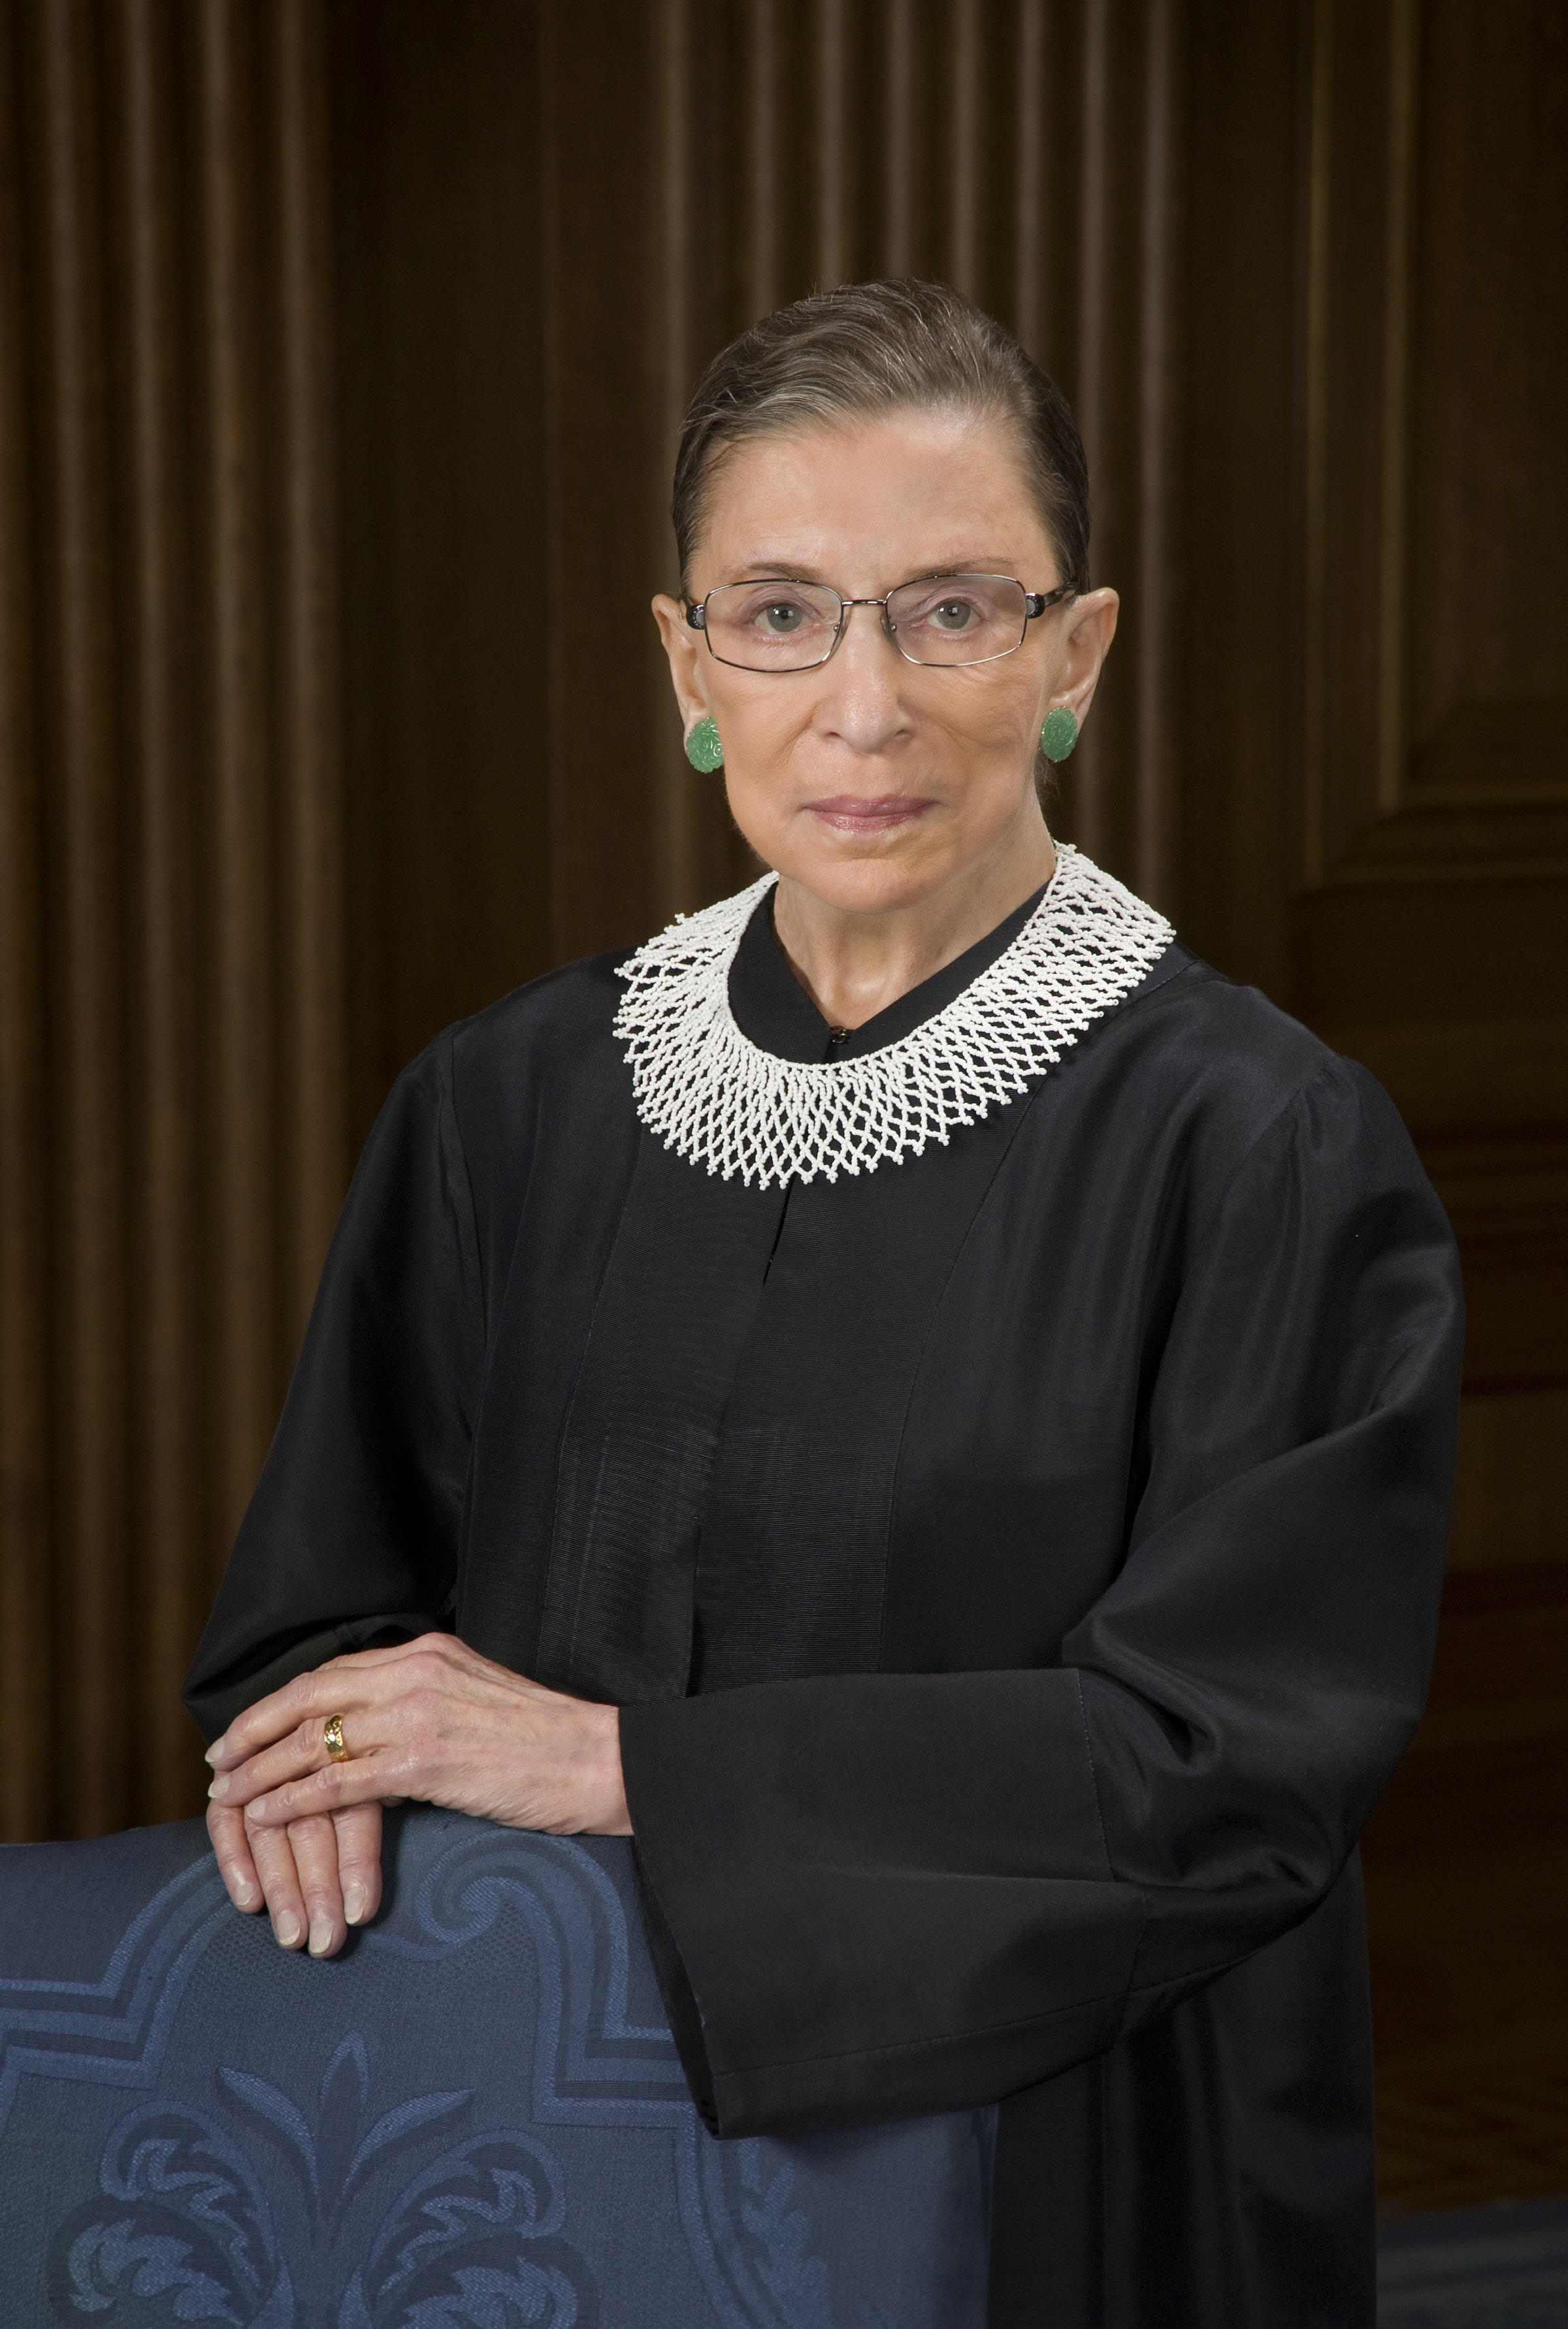 Supreme Court Justice Ruth Bader Ginsburg poses for a portrait photo on October 8, 2010 | Photo: Getty Images